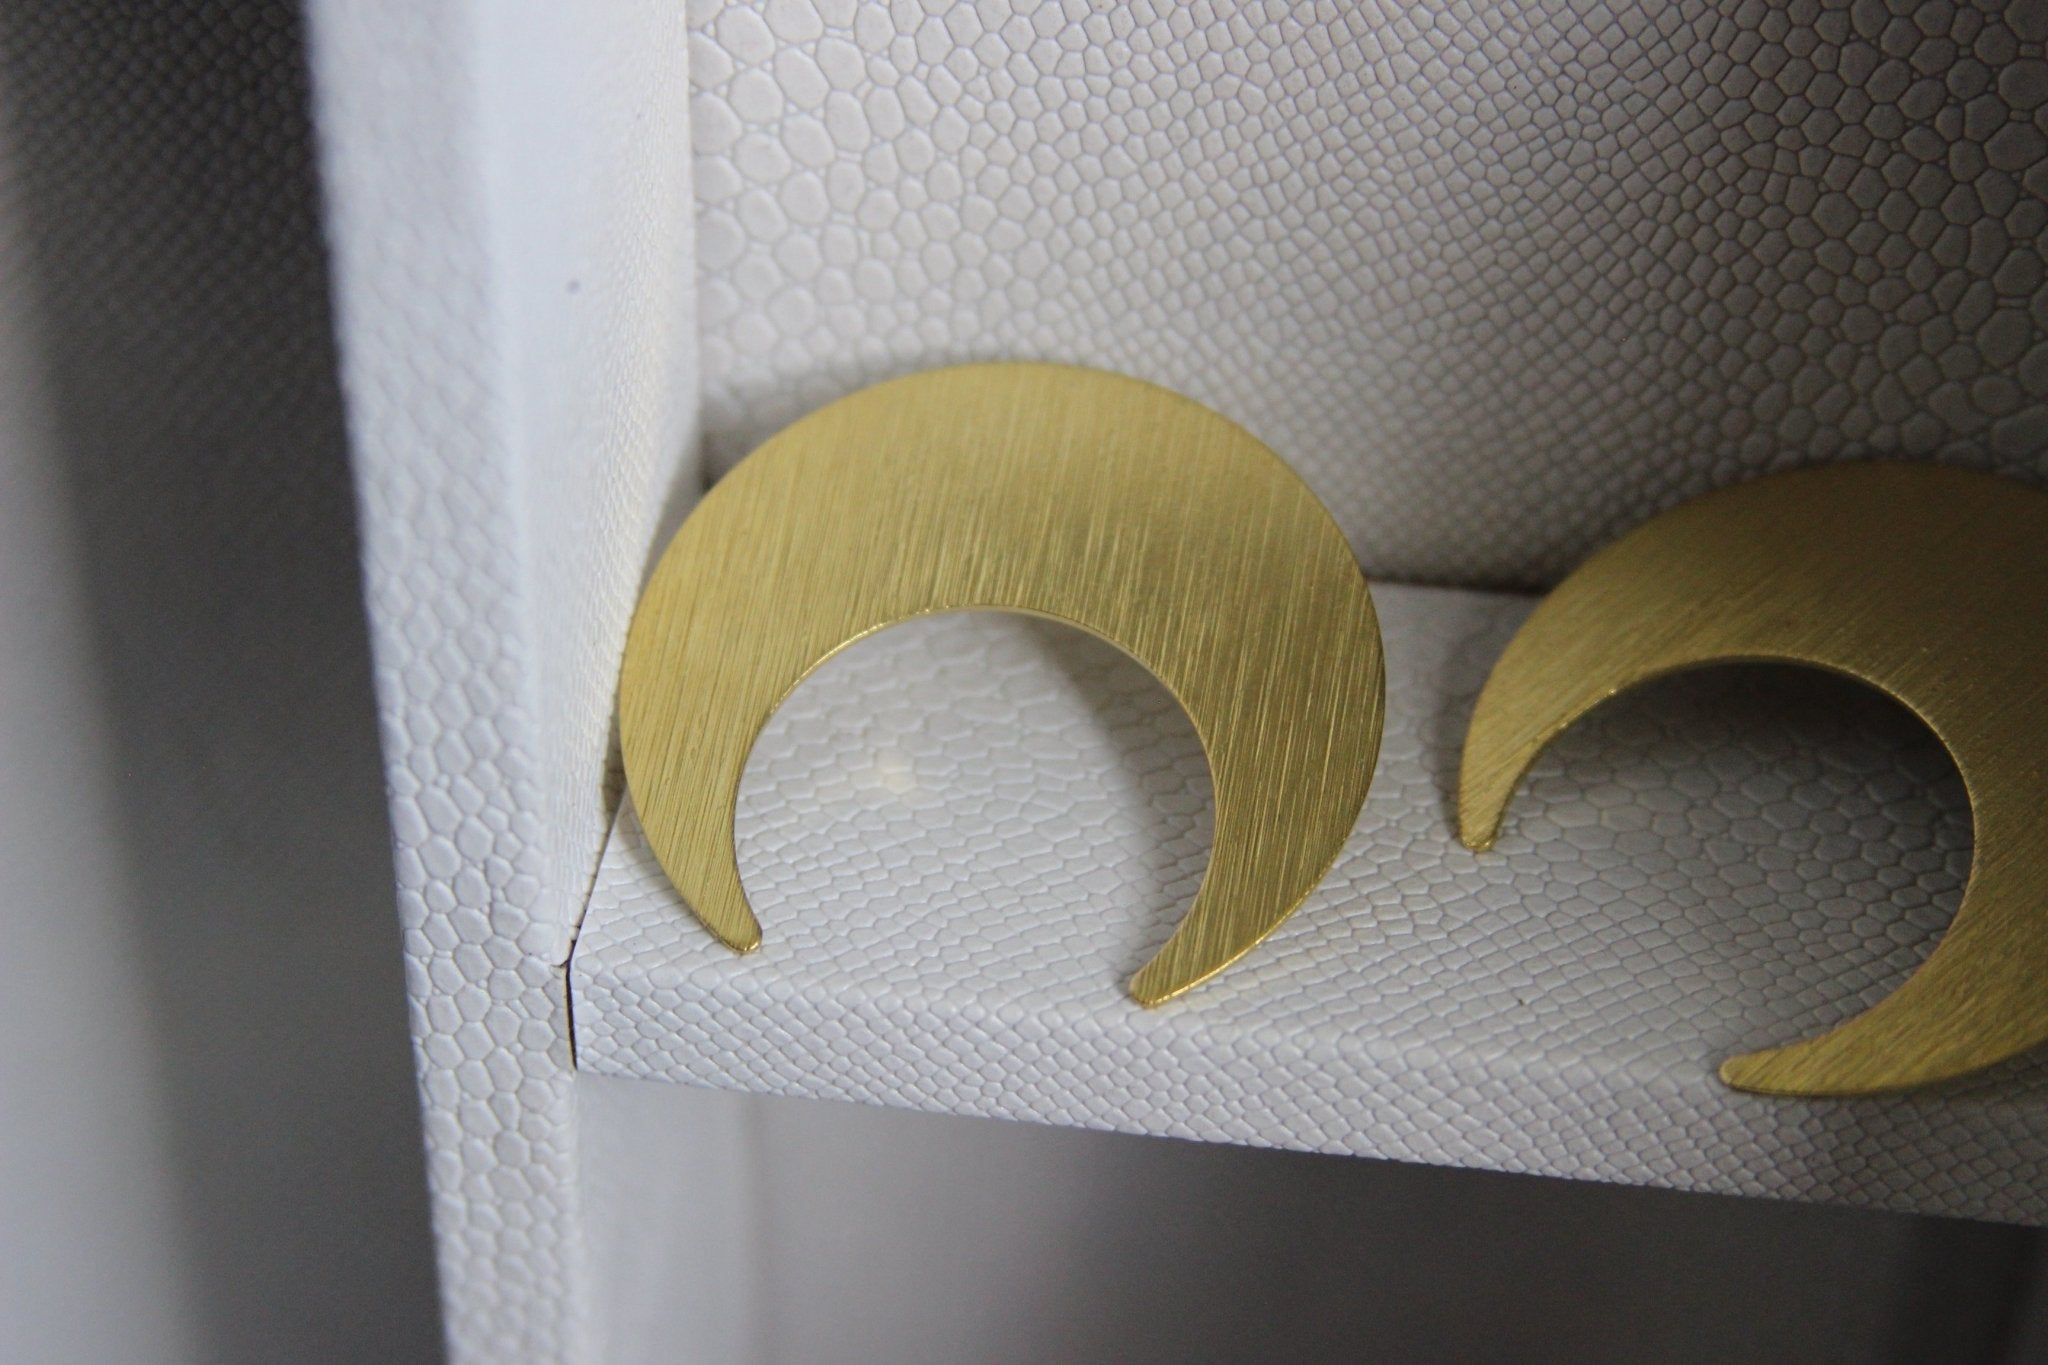 Shimmery Crescent Brass Moon Earrings - We Love Brass